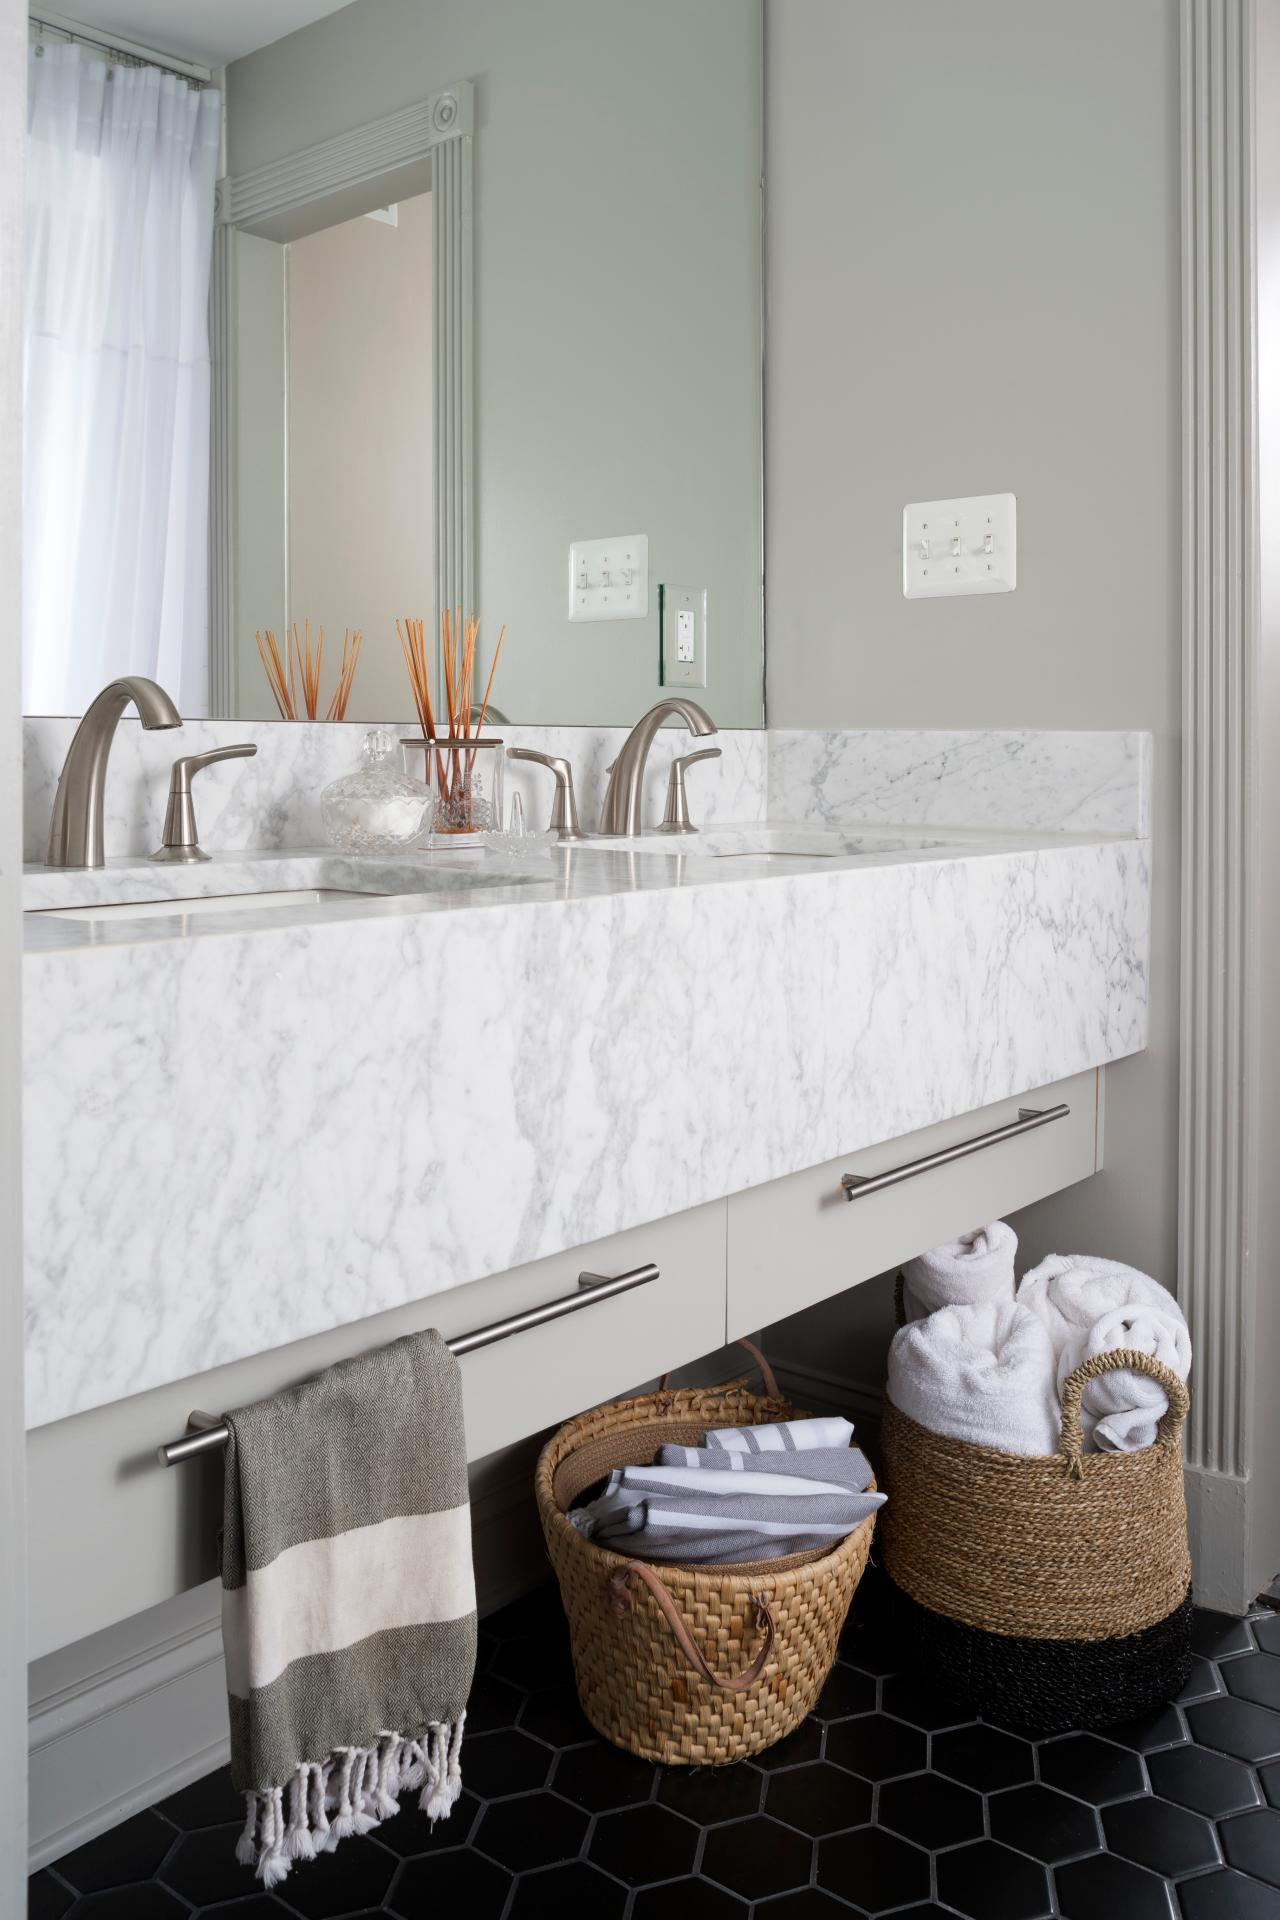 Marble Bathrooms We're Swooning Over | HGTV's Decorating & Design Blog | HGTV